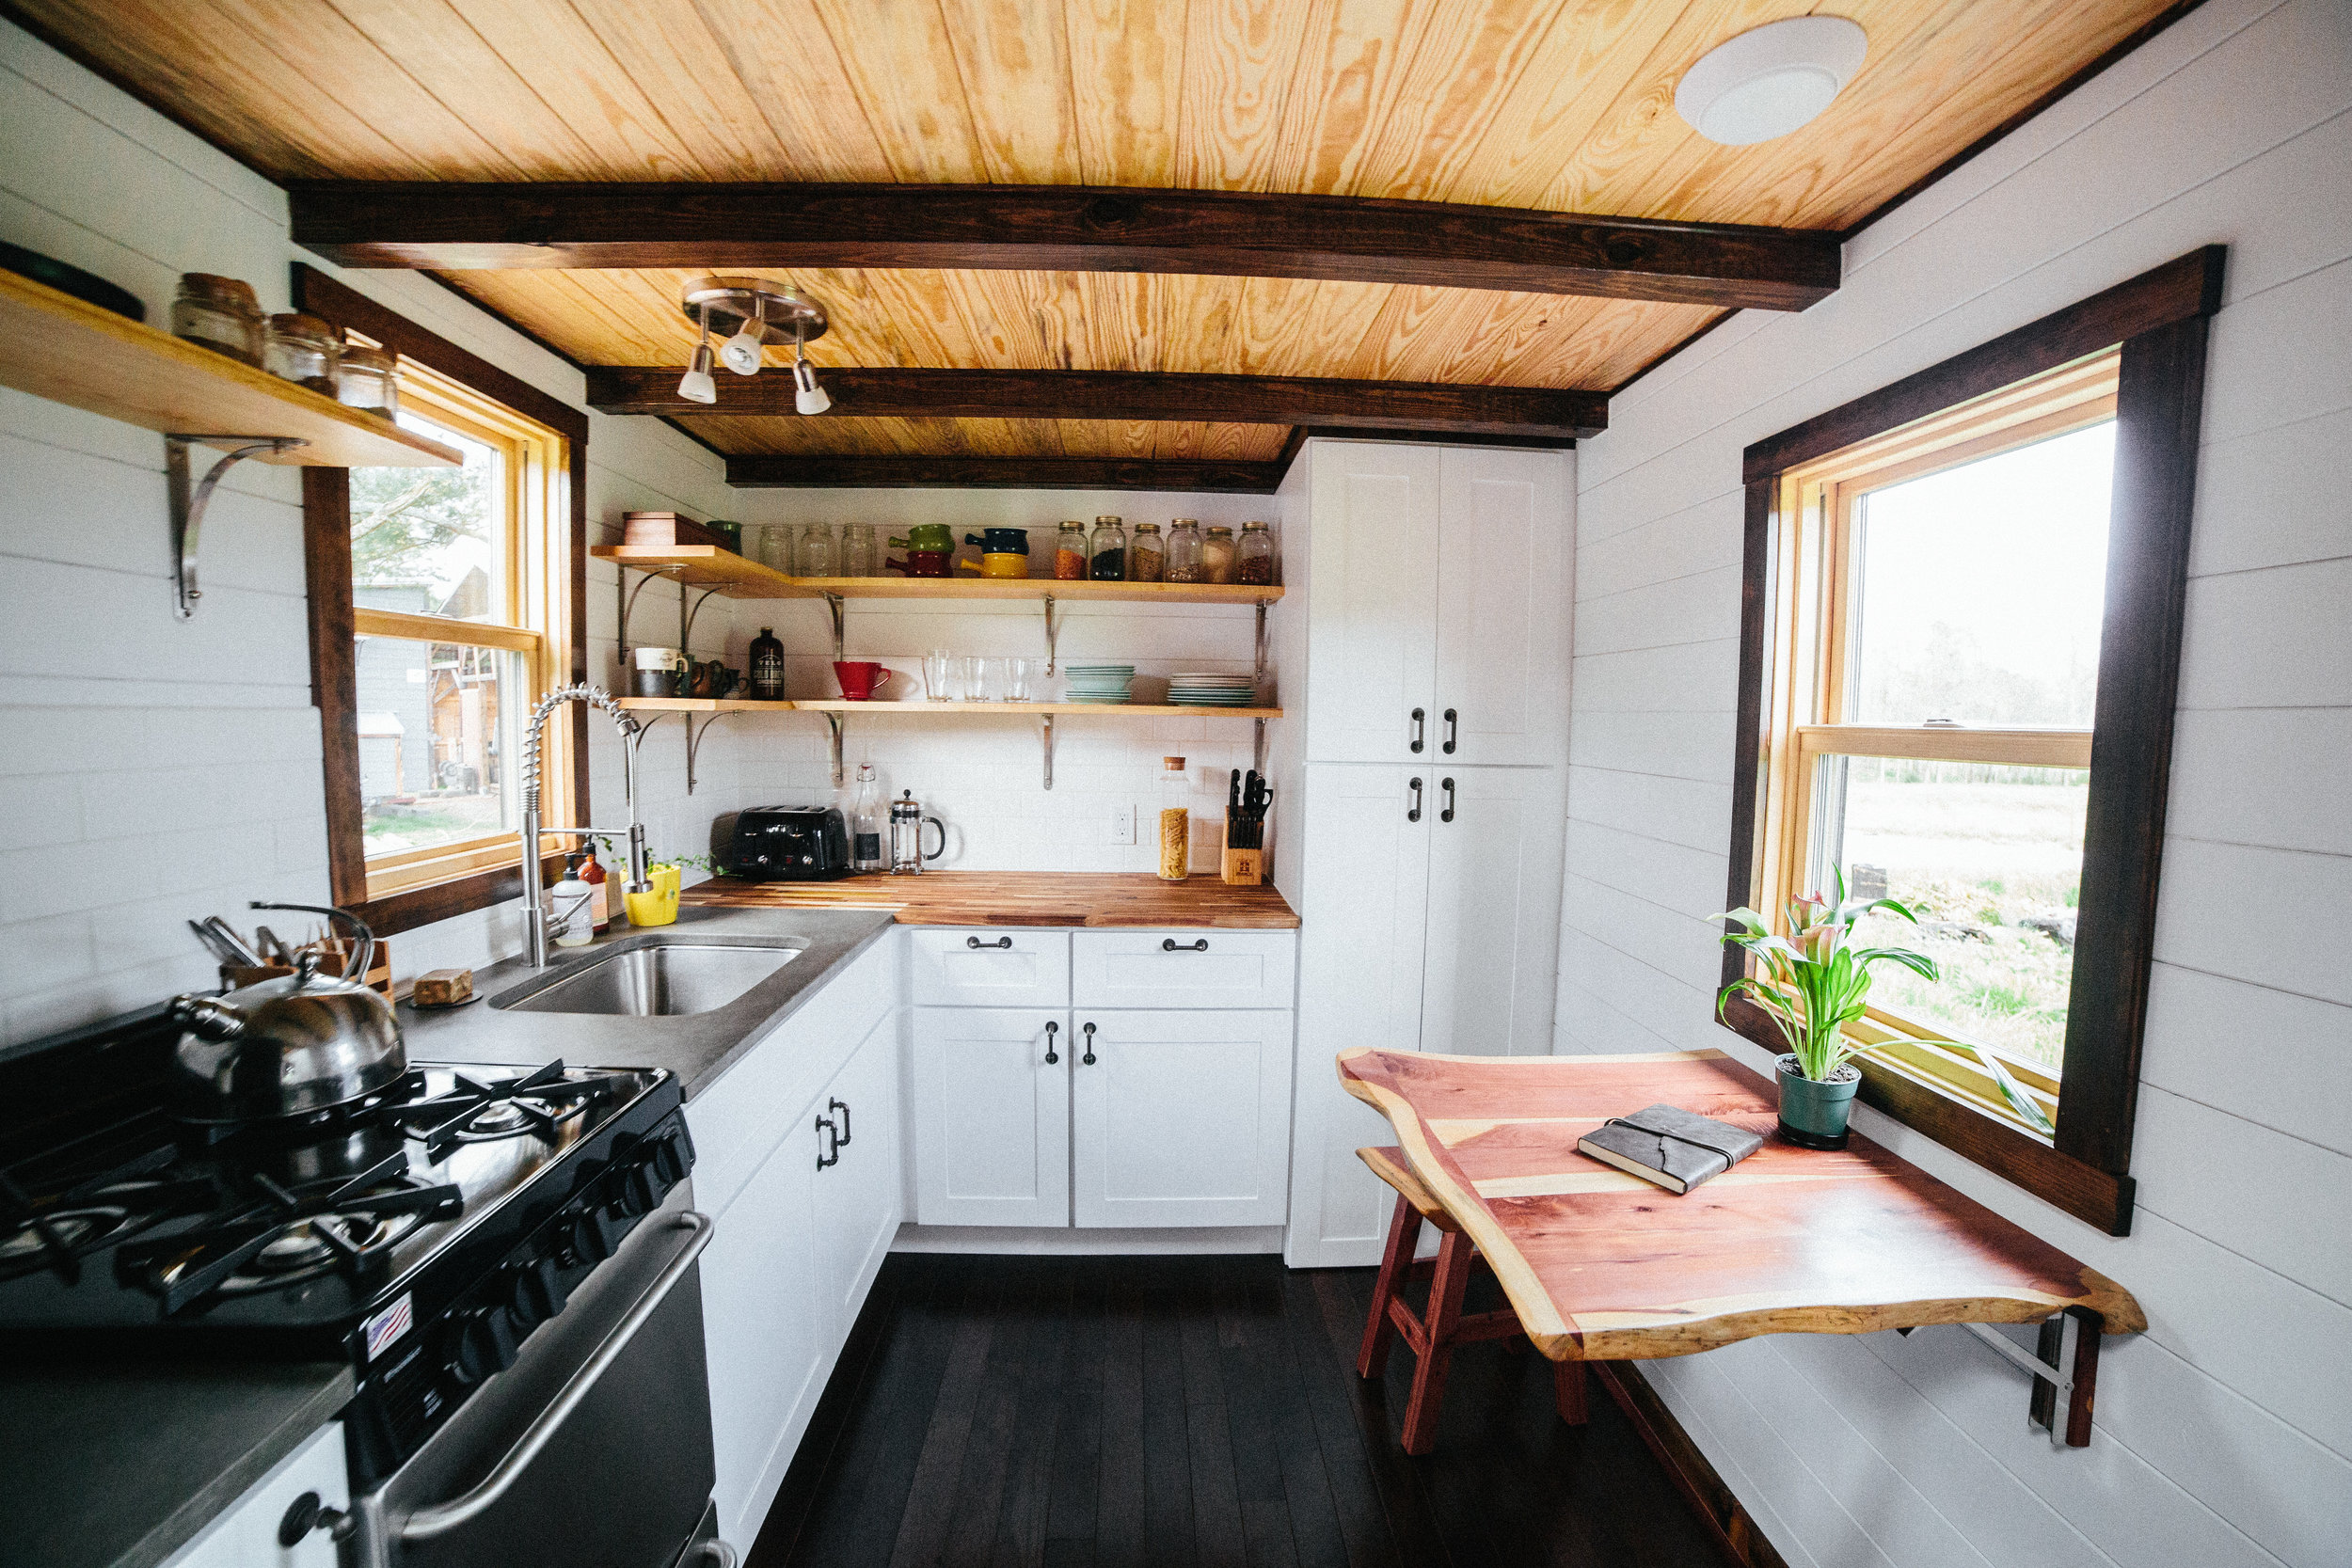 Wind River Tiny Homes on tiny prefab homes, tiny custom homes, tiny homes inside and outside, tiny room design ideas, tiny plans, loft small house designs, tiny fashion, tiny books, tiny compact homes, tiny kit homes, tiny portable homes, tiny interior design, tiny homes with staircases, mini bungalow house plans designs, tiny house, tiny art, tiny bedroom, tiny modular homes, tiny log homes, small box type house designs,